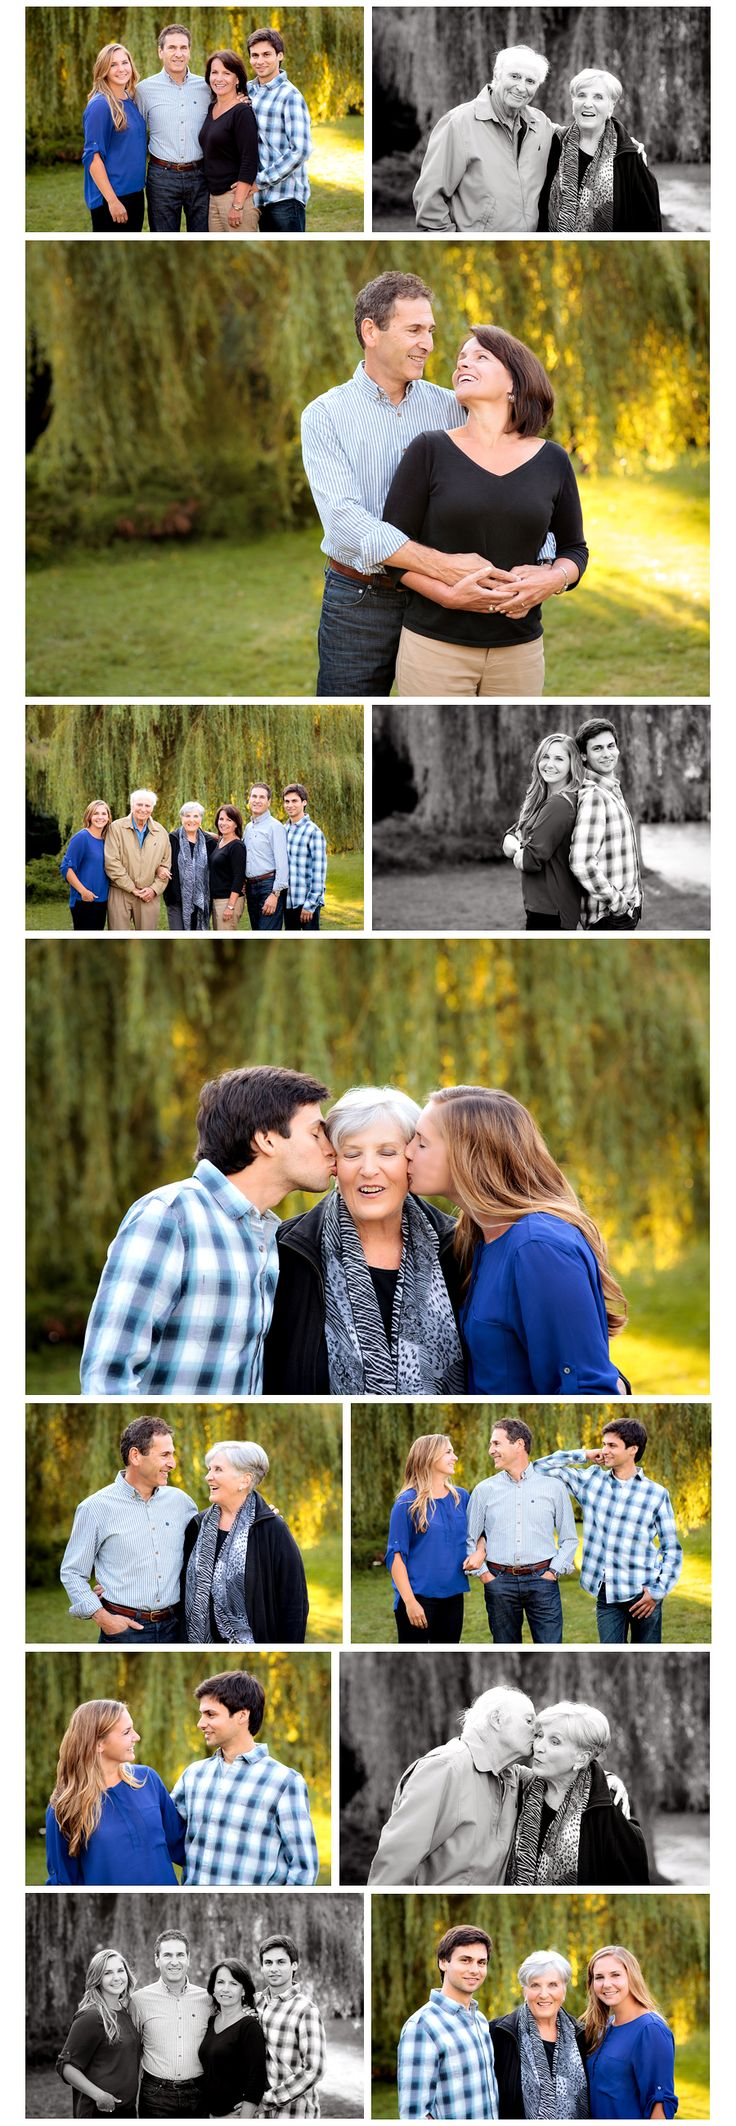 Extended Family Love {Family Photography | Victoria, B.C.} >> Nicole Israel Photography